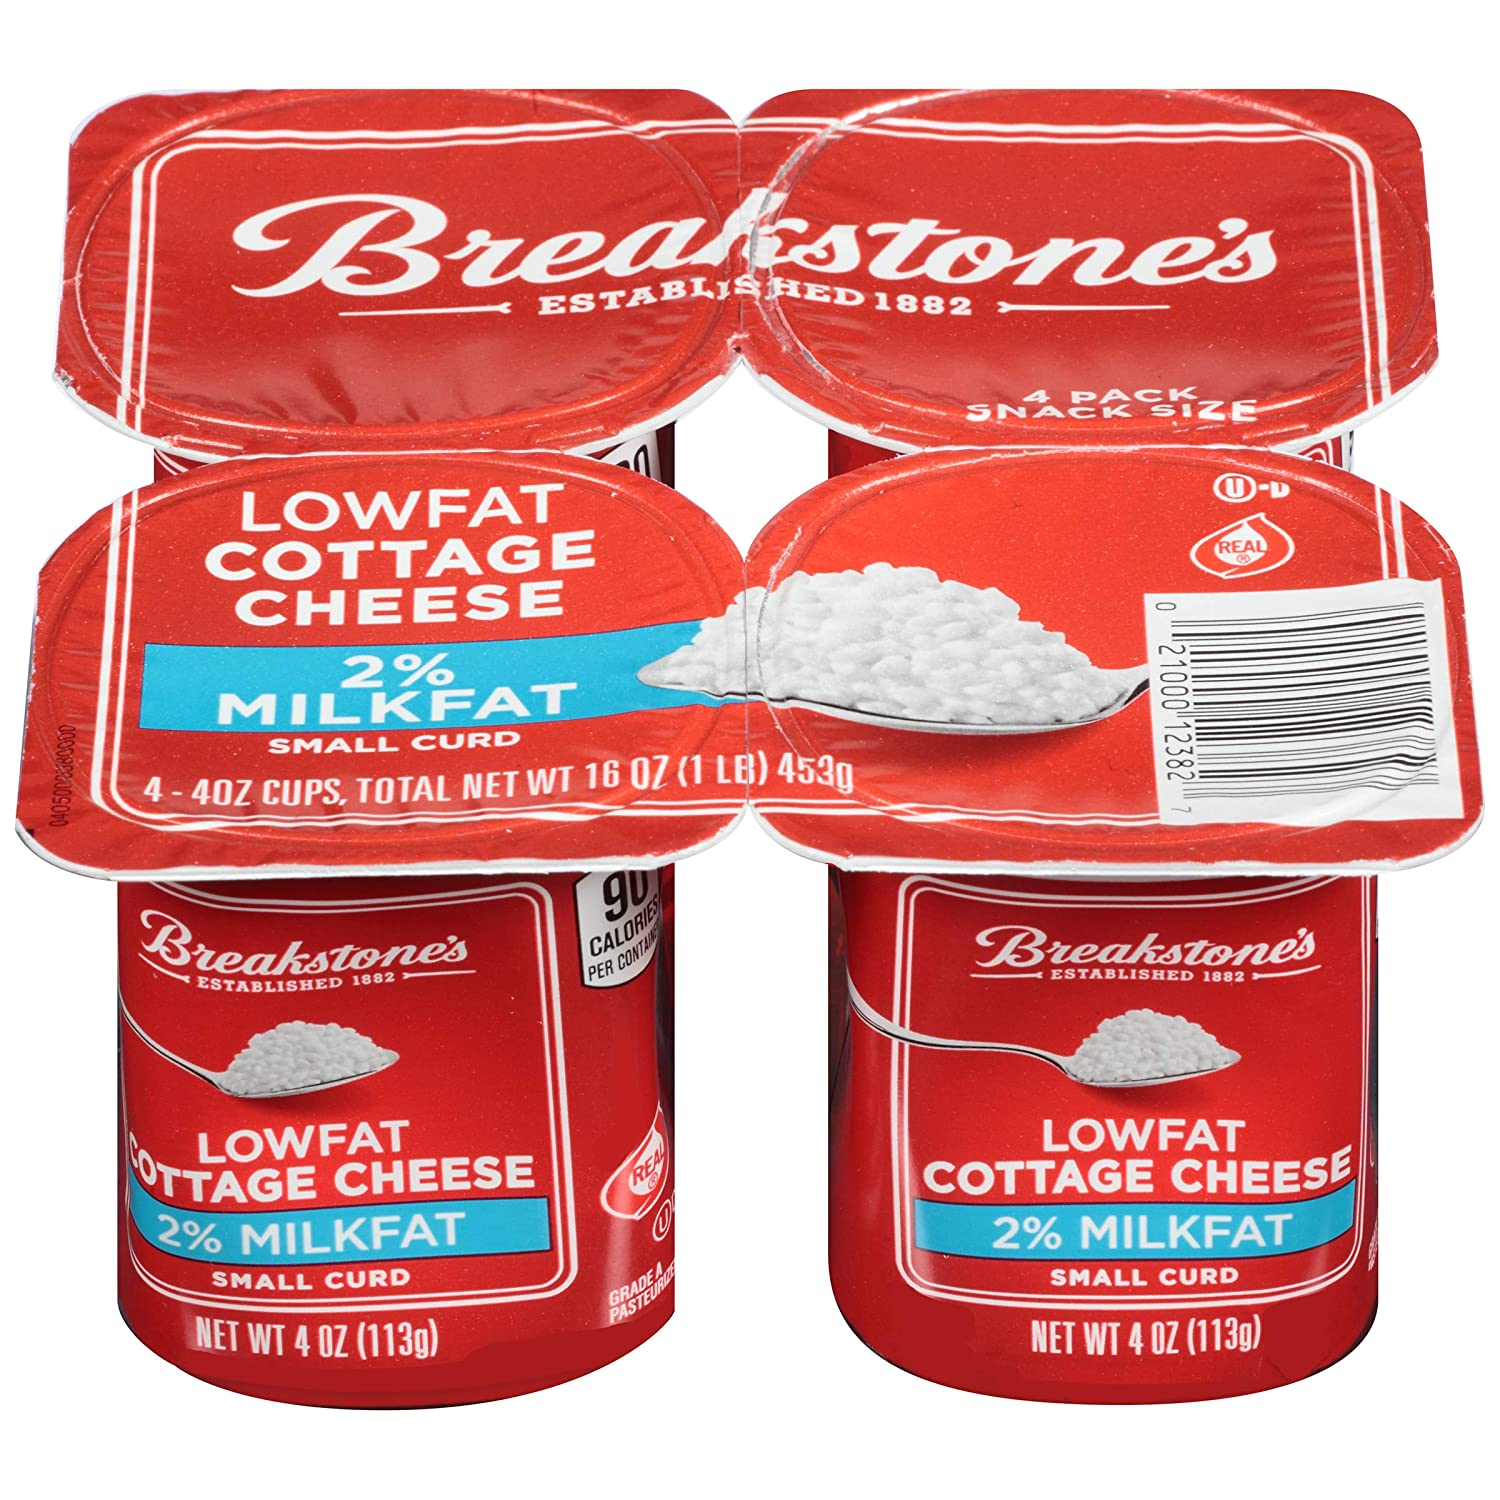 Swell Breakstones Low Fat Small Curd Cottage Cheese 4 Oz Cups 4 Count Download Free Architecture Designs Rallybritishbridgeorg